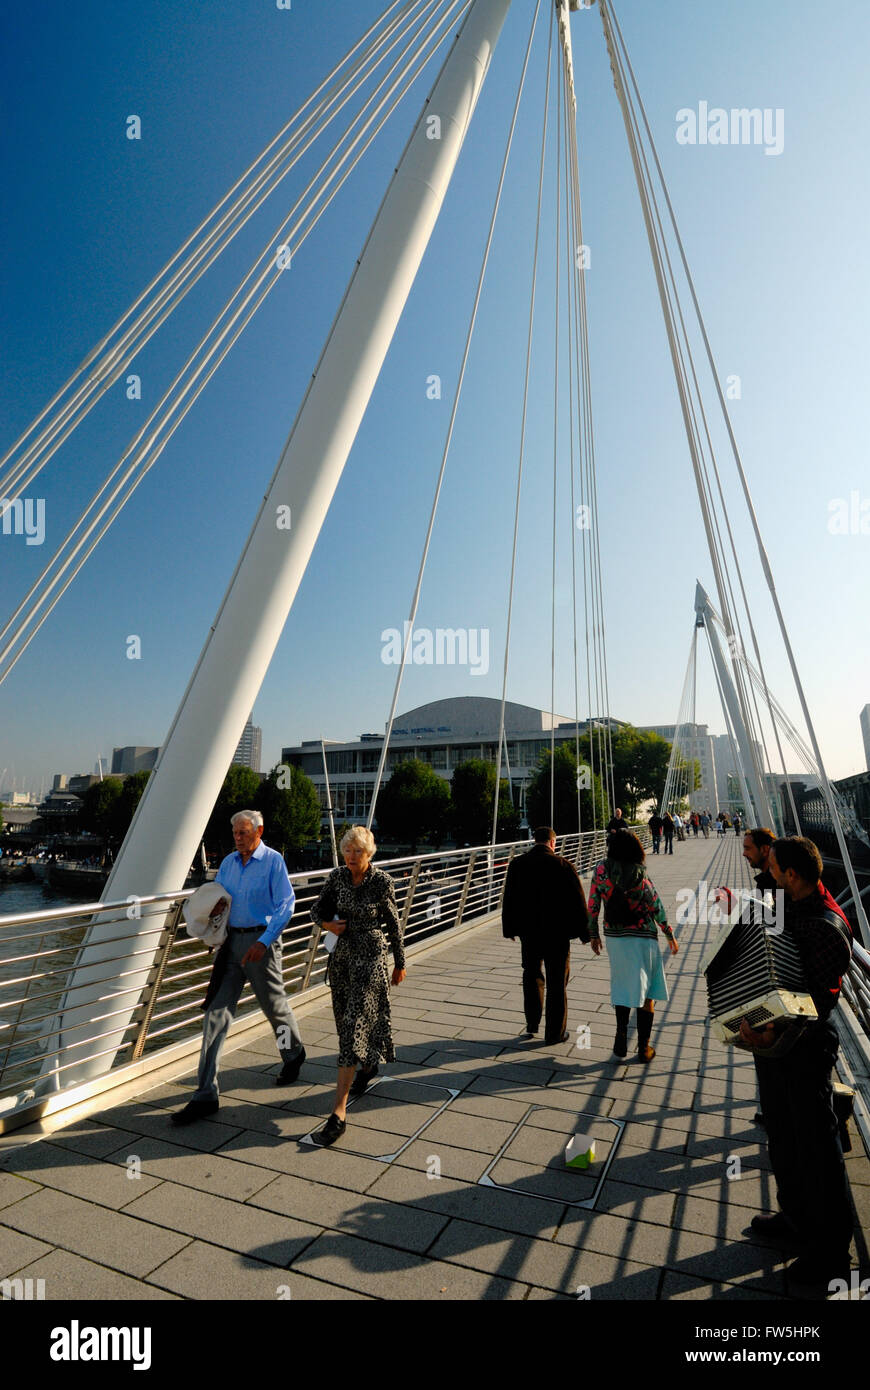 new Hungerford Bridge, foot bridge linking London's South Bank with the West End, showing Royal Festival Hall, - Stock Image